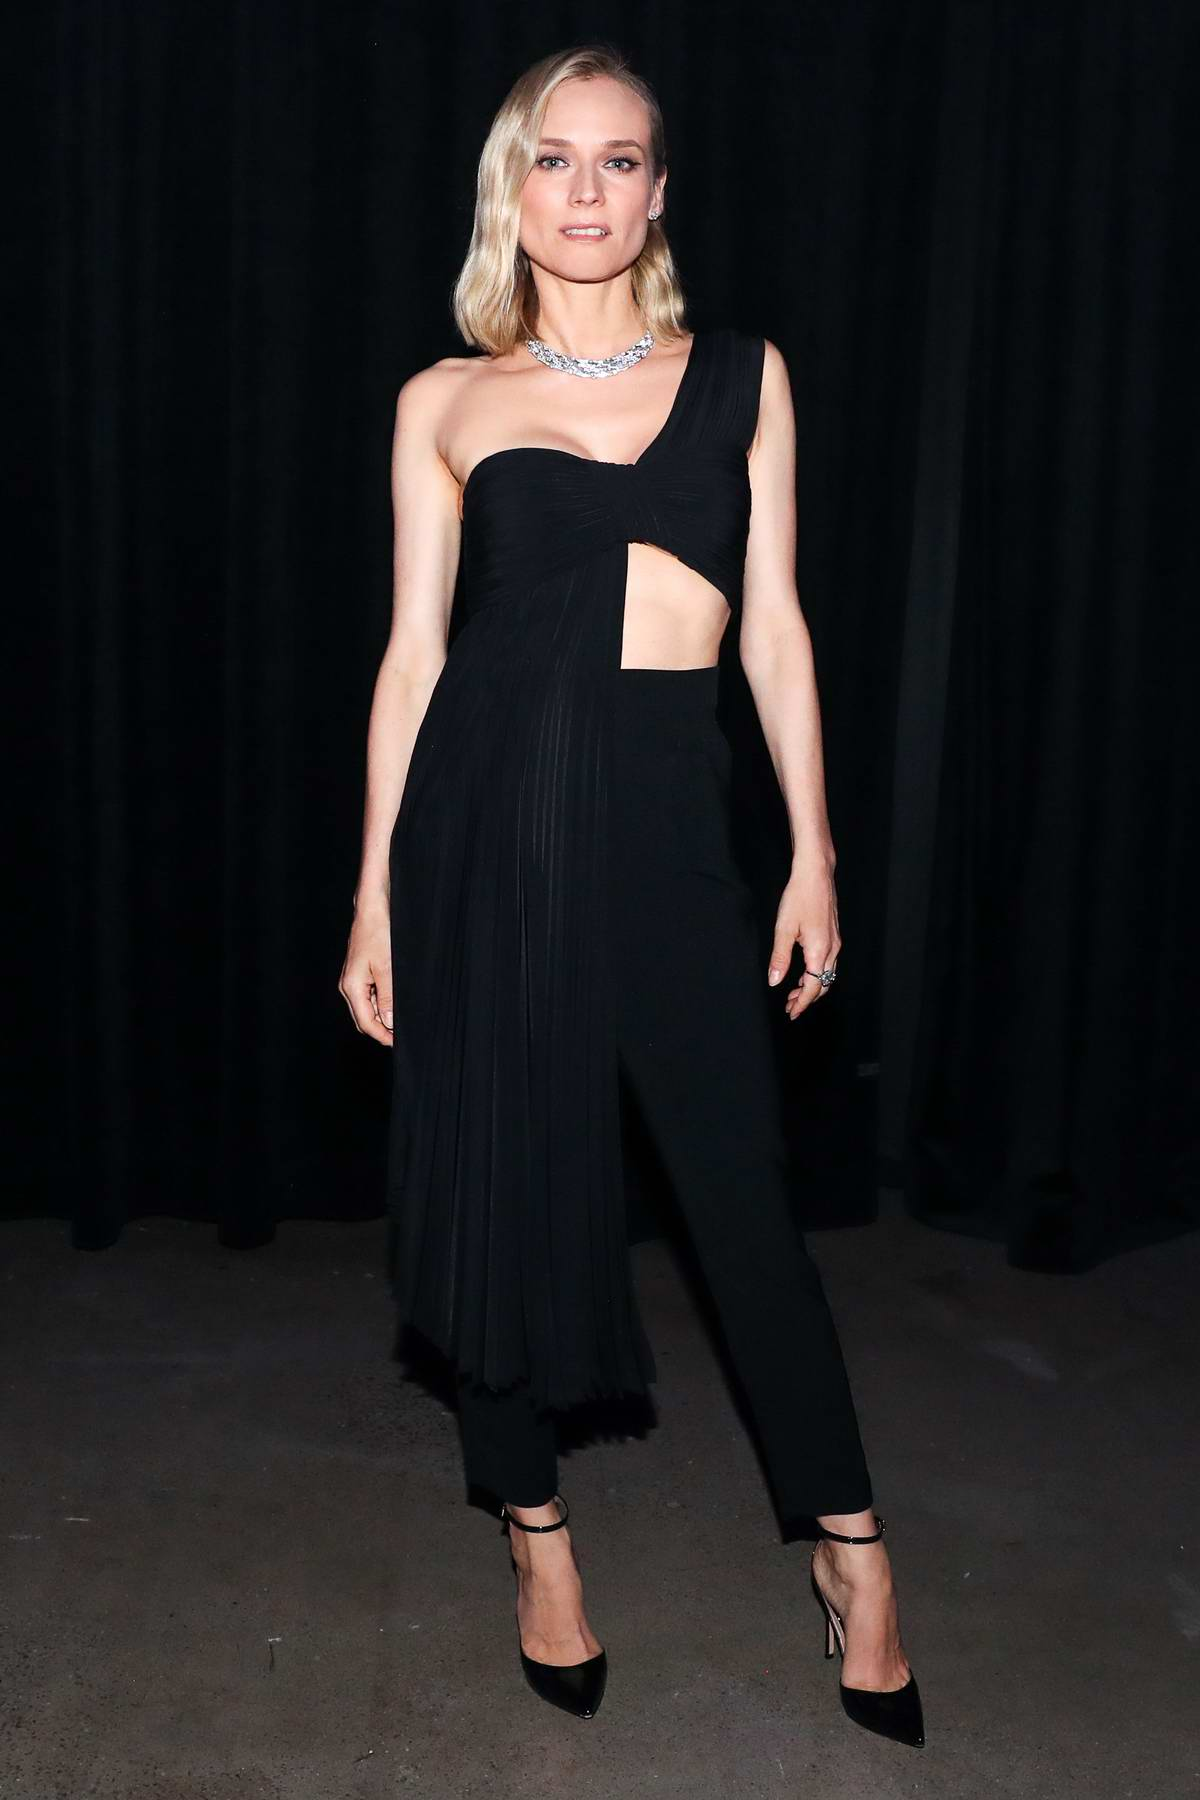 Diane Kruger attends the Bvlgari World Premiere of 'Celestial and The Fourth Wave' in New York City